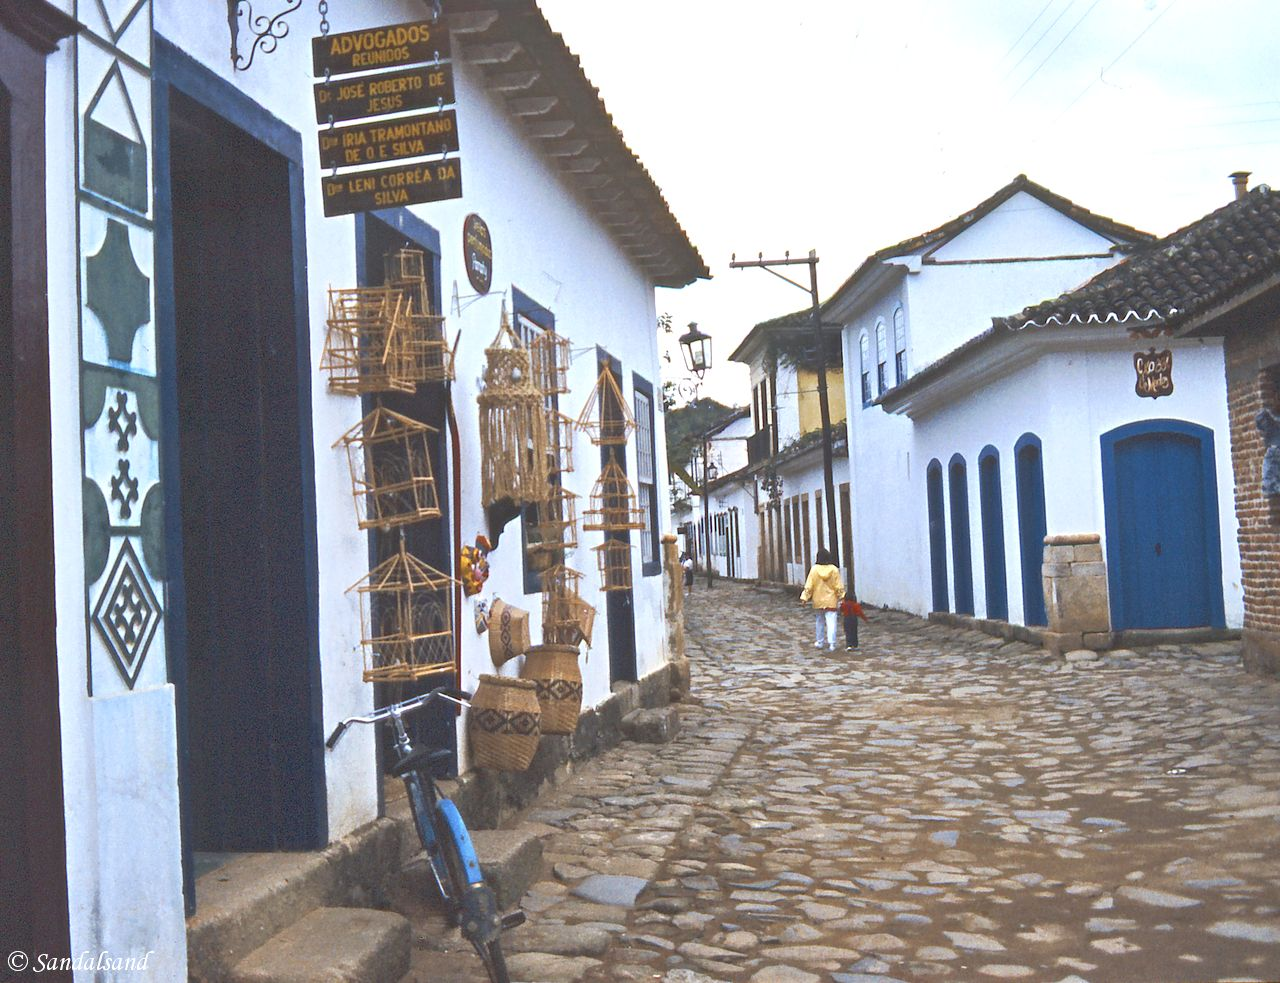 Brazil - Paraty - Colonial style houses